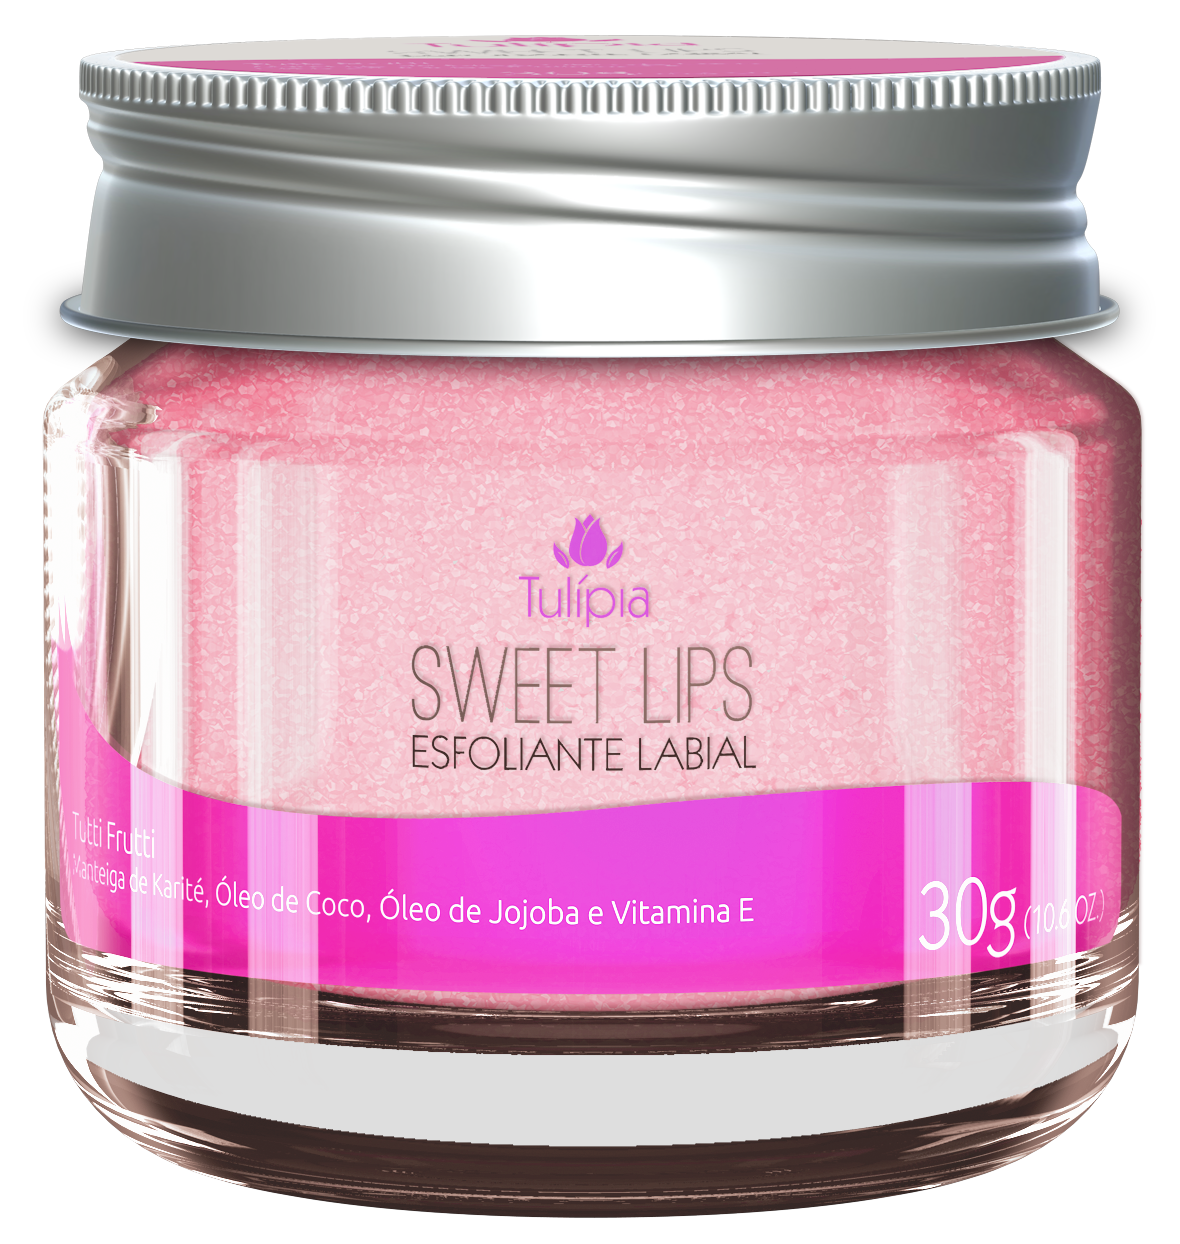 Esfoliante Labial - Sweet Lips 30g